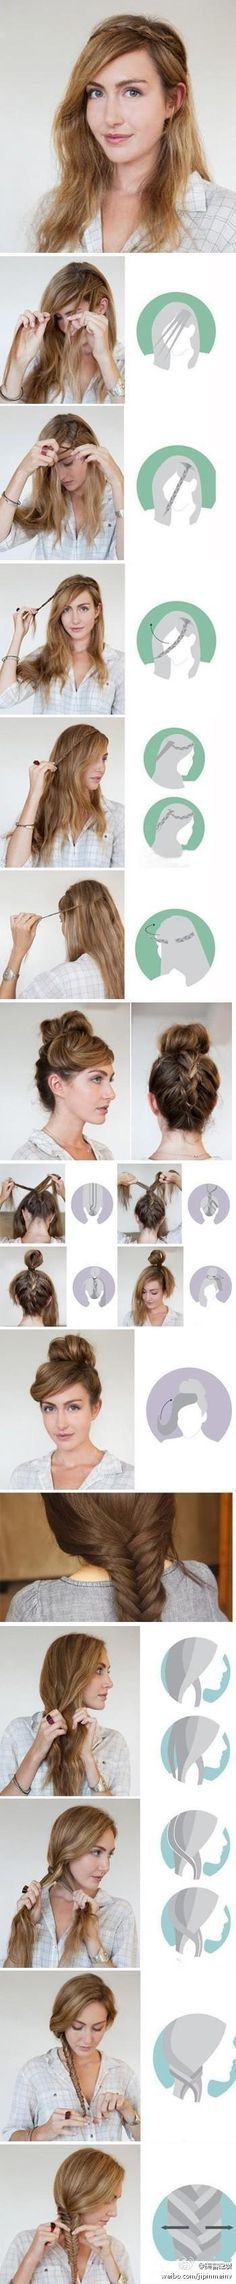 Popular Hair & Beauty from Pinterest: 8 March - IKnowHair.Com